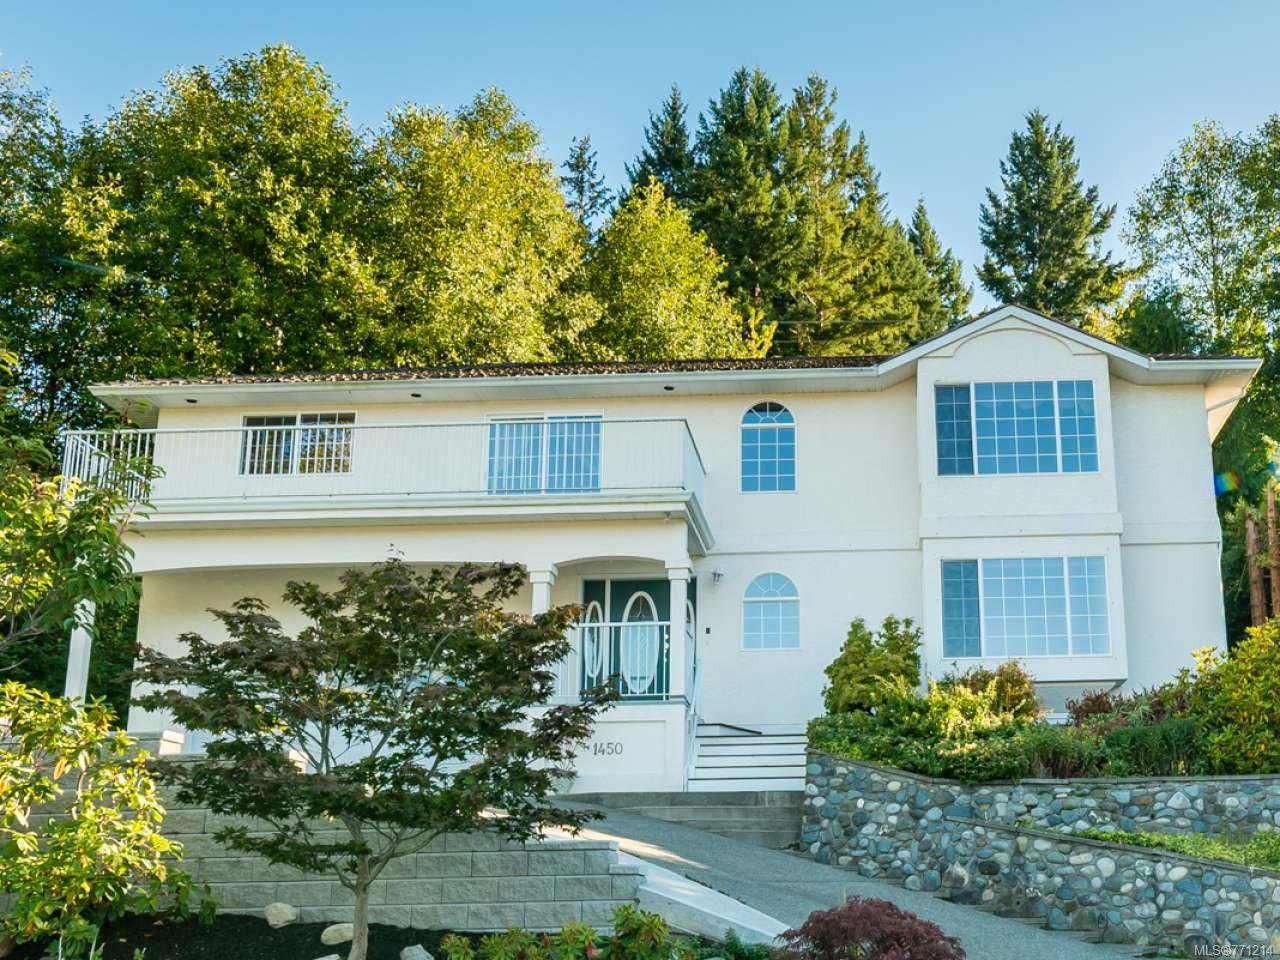 Main Photo: 1450 Farquharson Dr in COURTENAY: CV Courtenay East House for sale (Comox Valley)  : MLS®# 771214